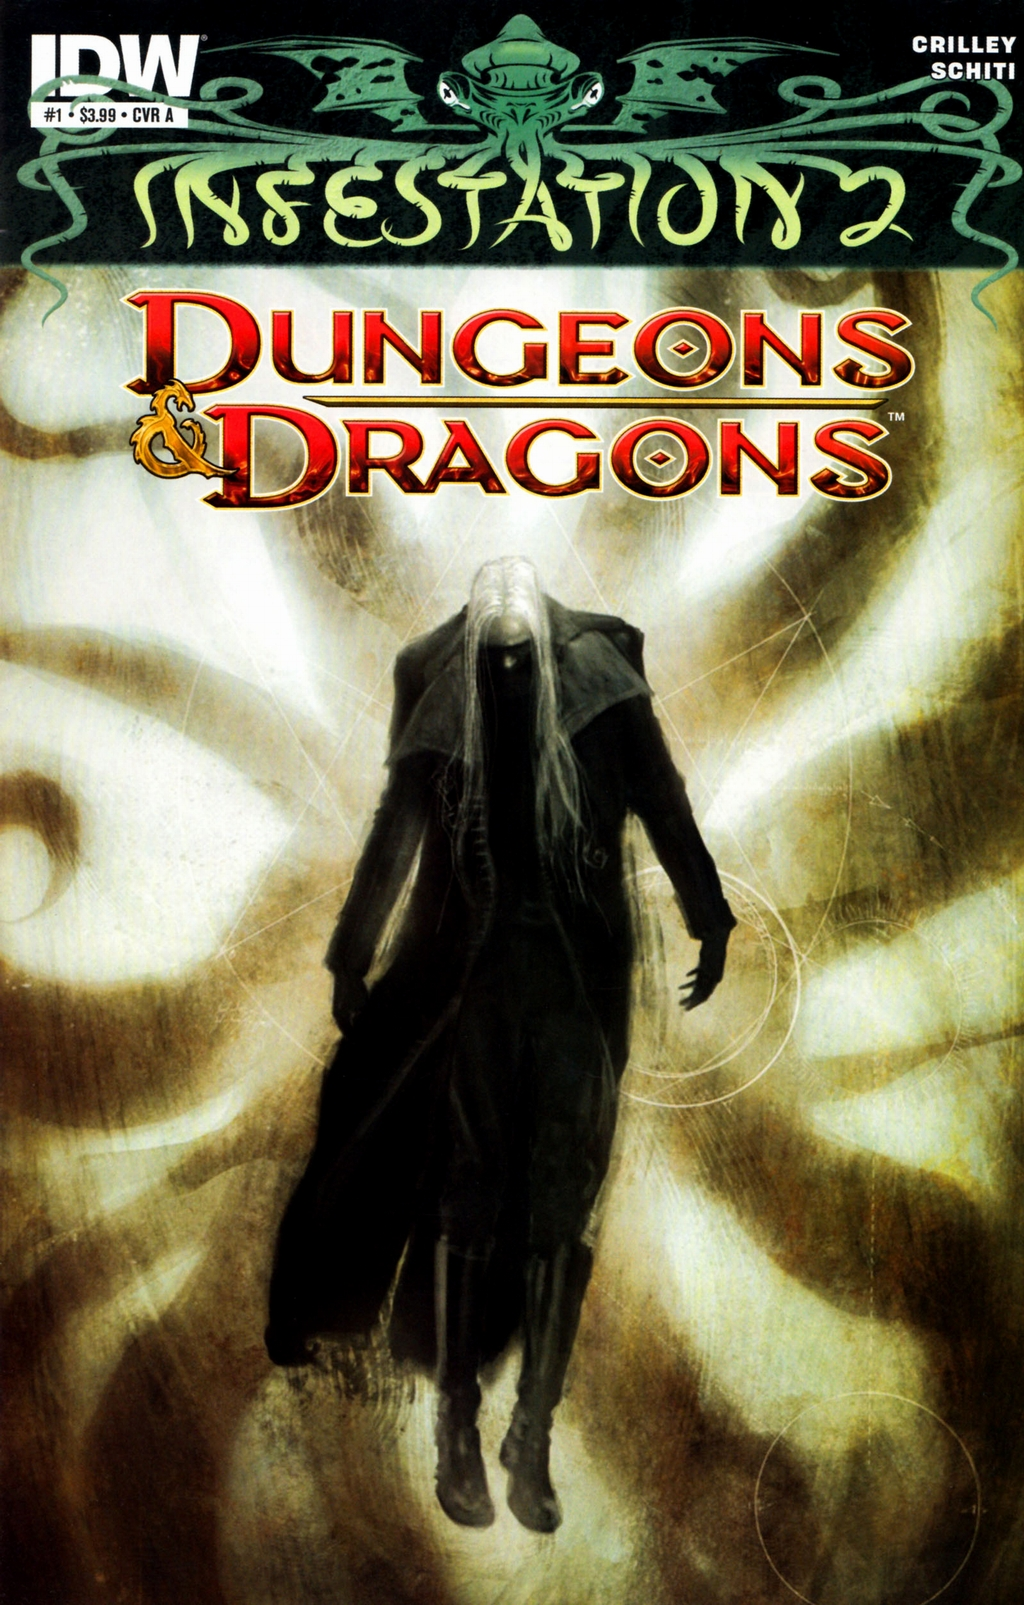 Read online Infestation 2: Dungeons & Dragons comic -  Issue #1 - 1